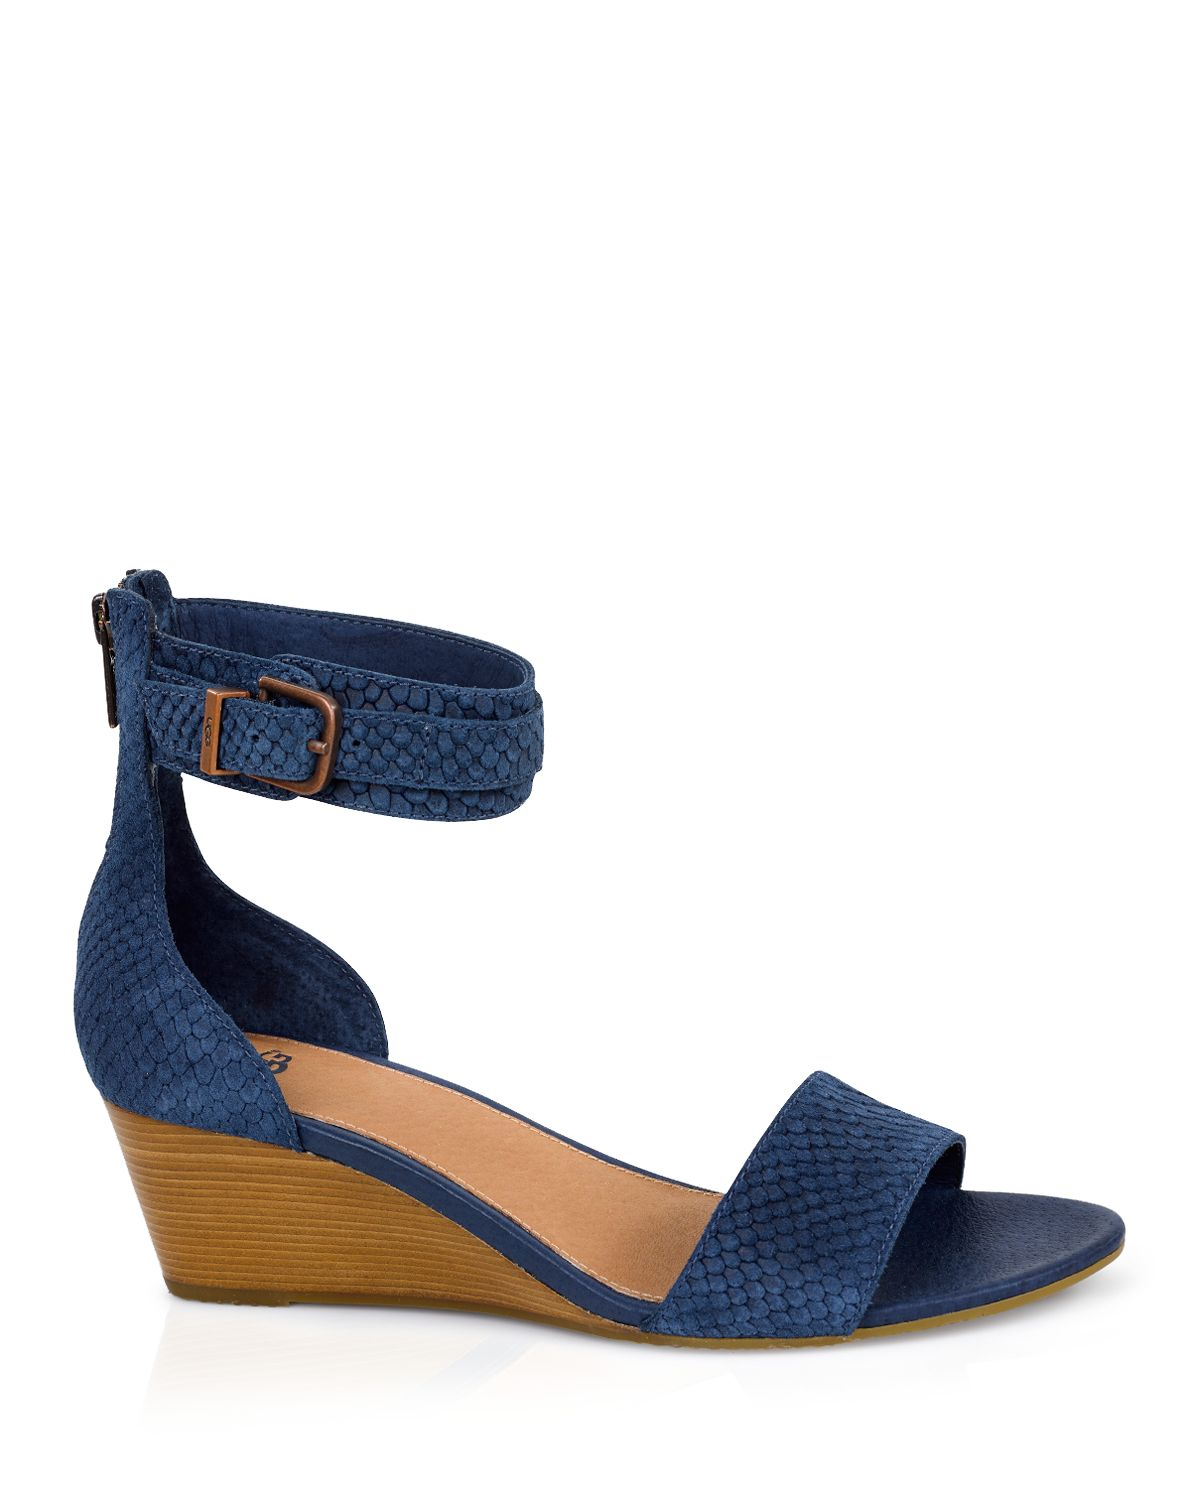 a62130eb8f9 UGG Blue ® Open Toe Wedge Sandals - Char